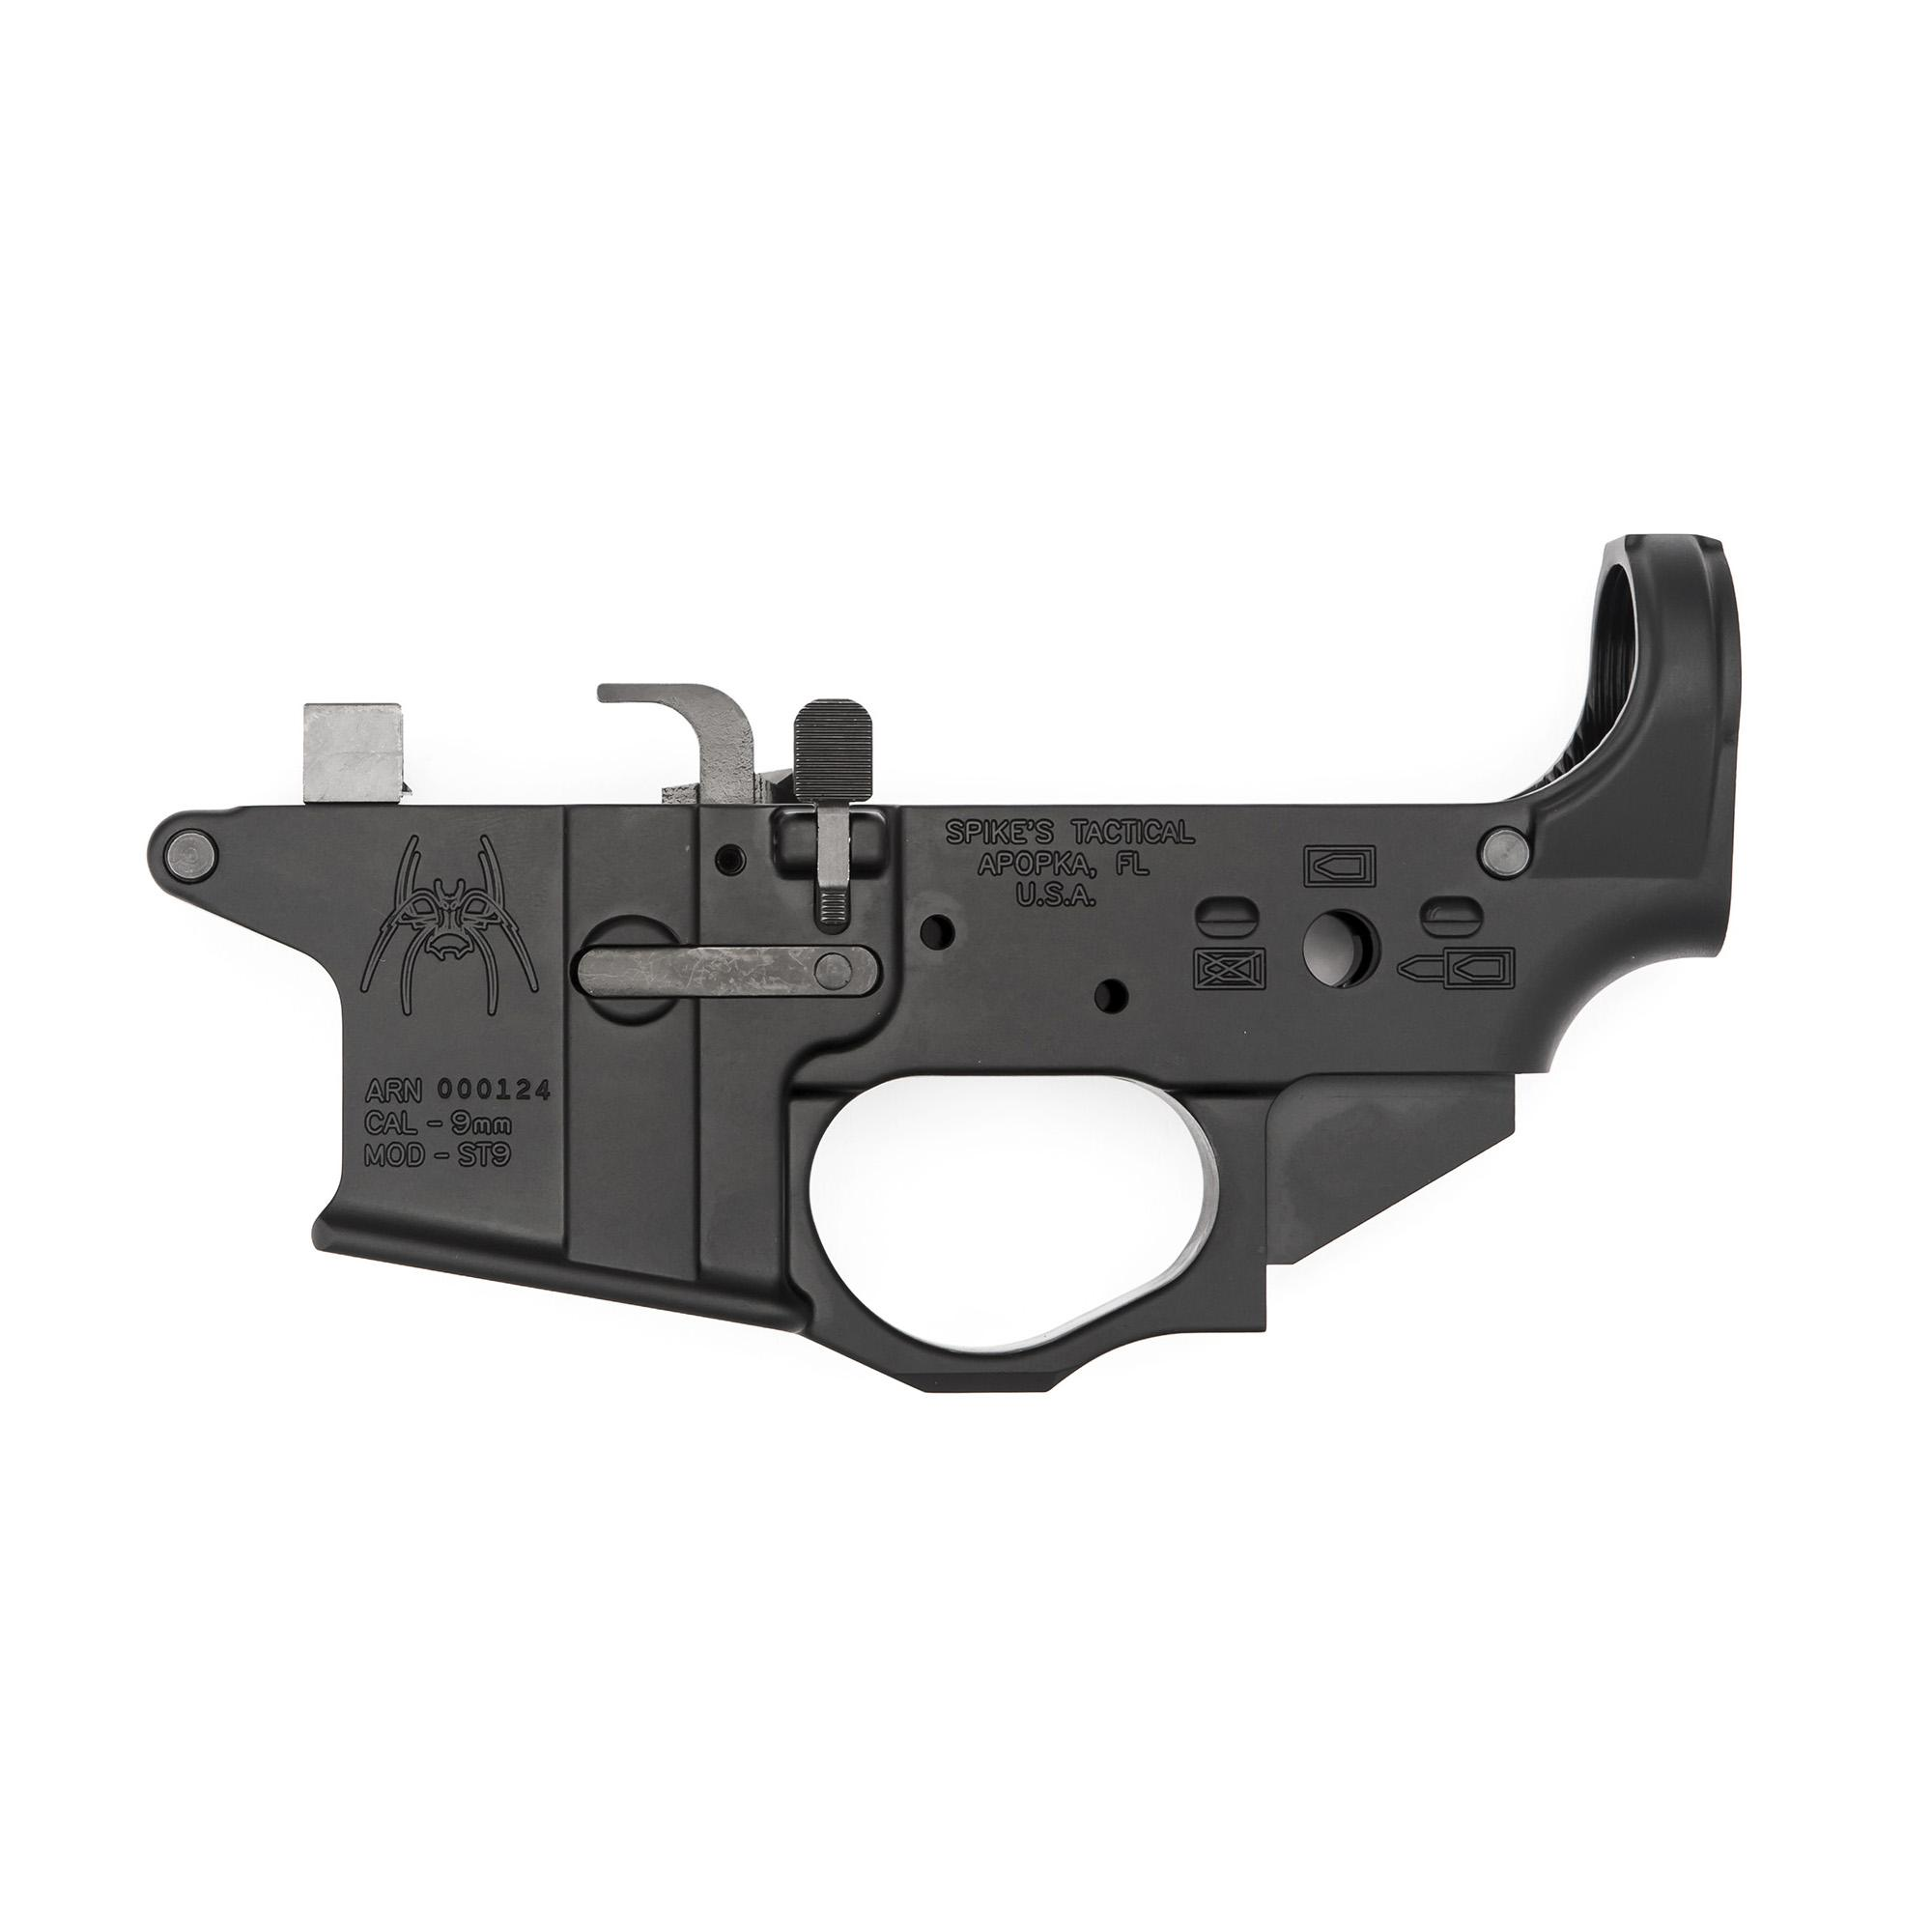 Specialist In High End AR15 Stocks